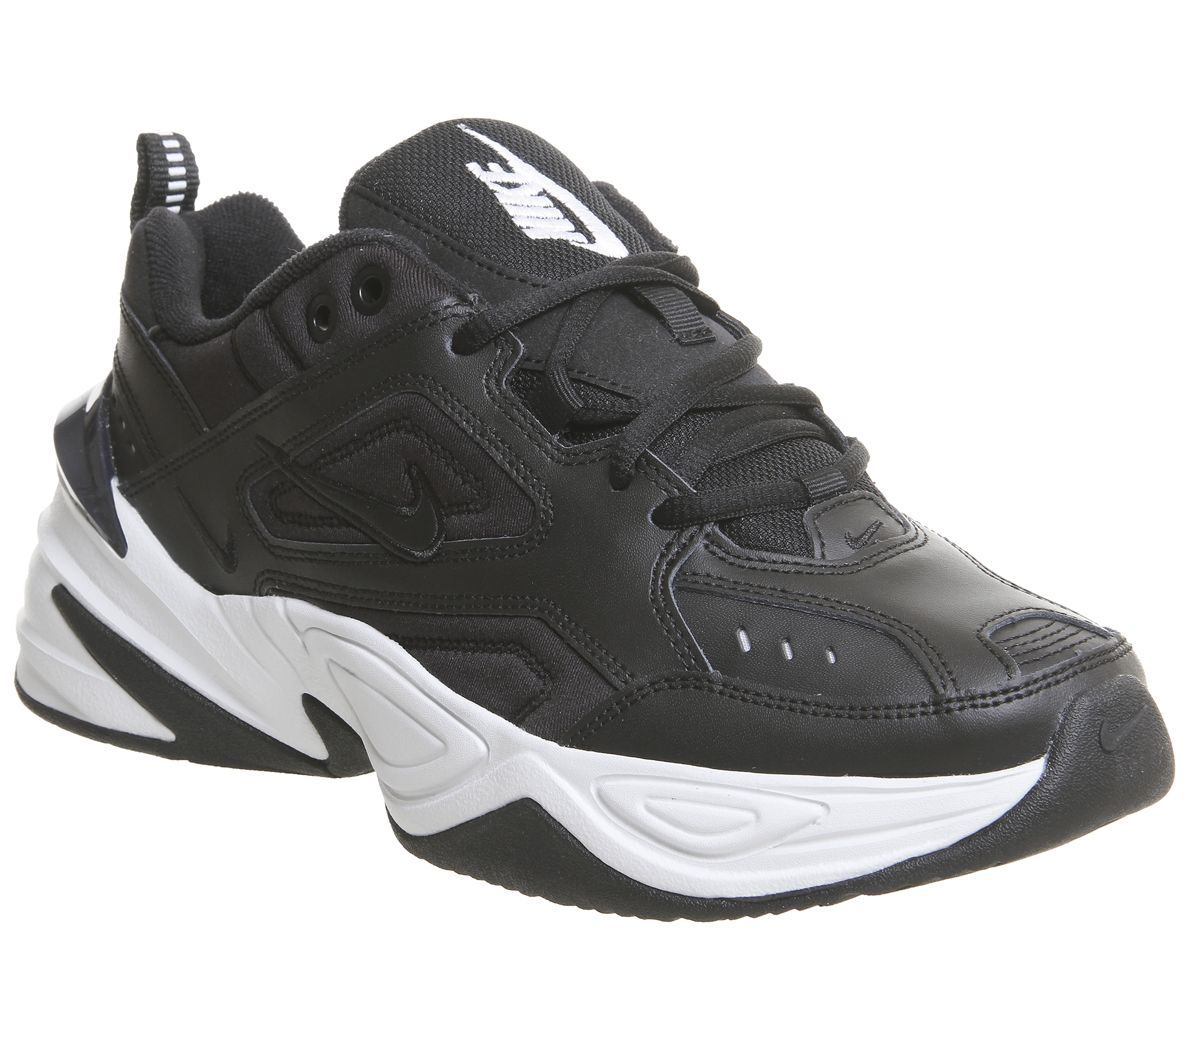 competitive price dc32f e9e28 Nike M2k Tekno Trainers Black White F - Hers trainers